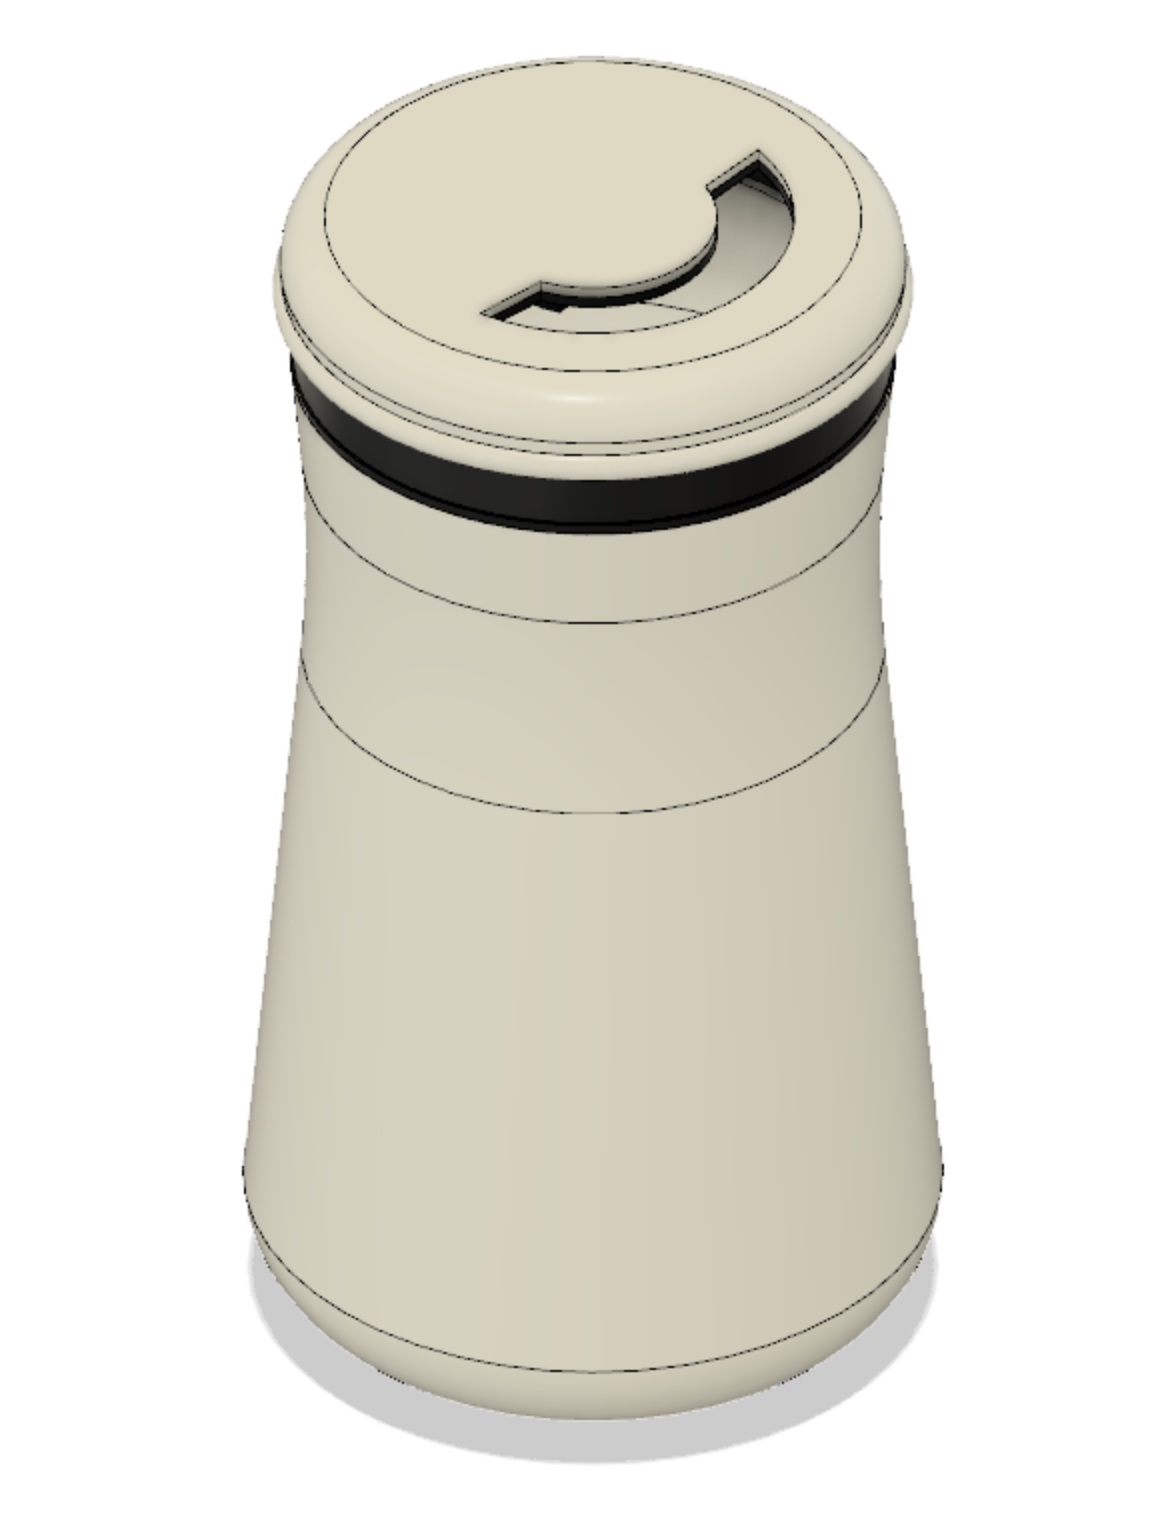 Threaded canister